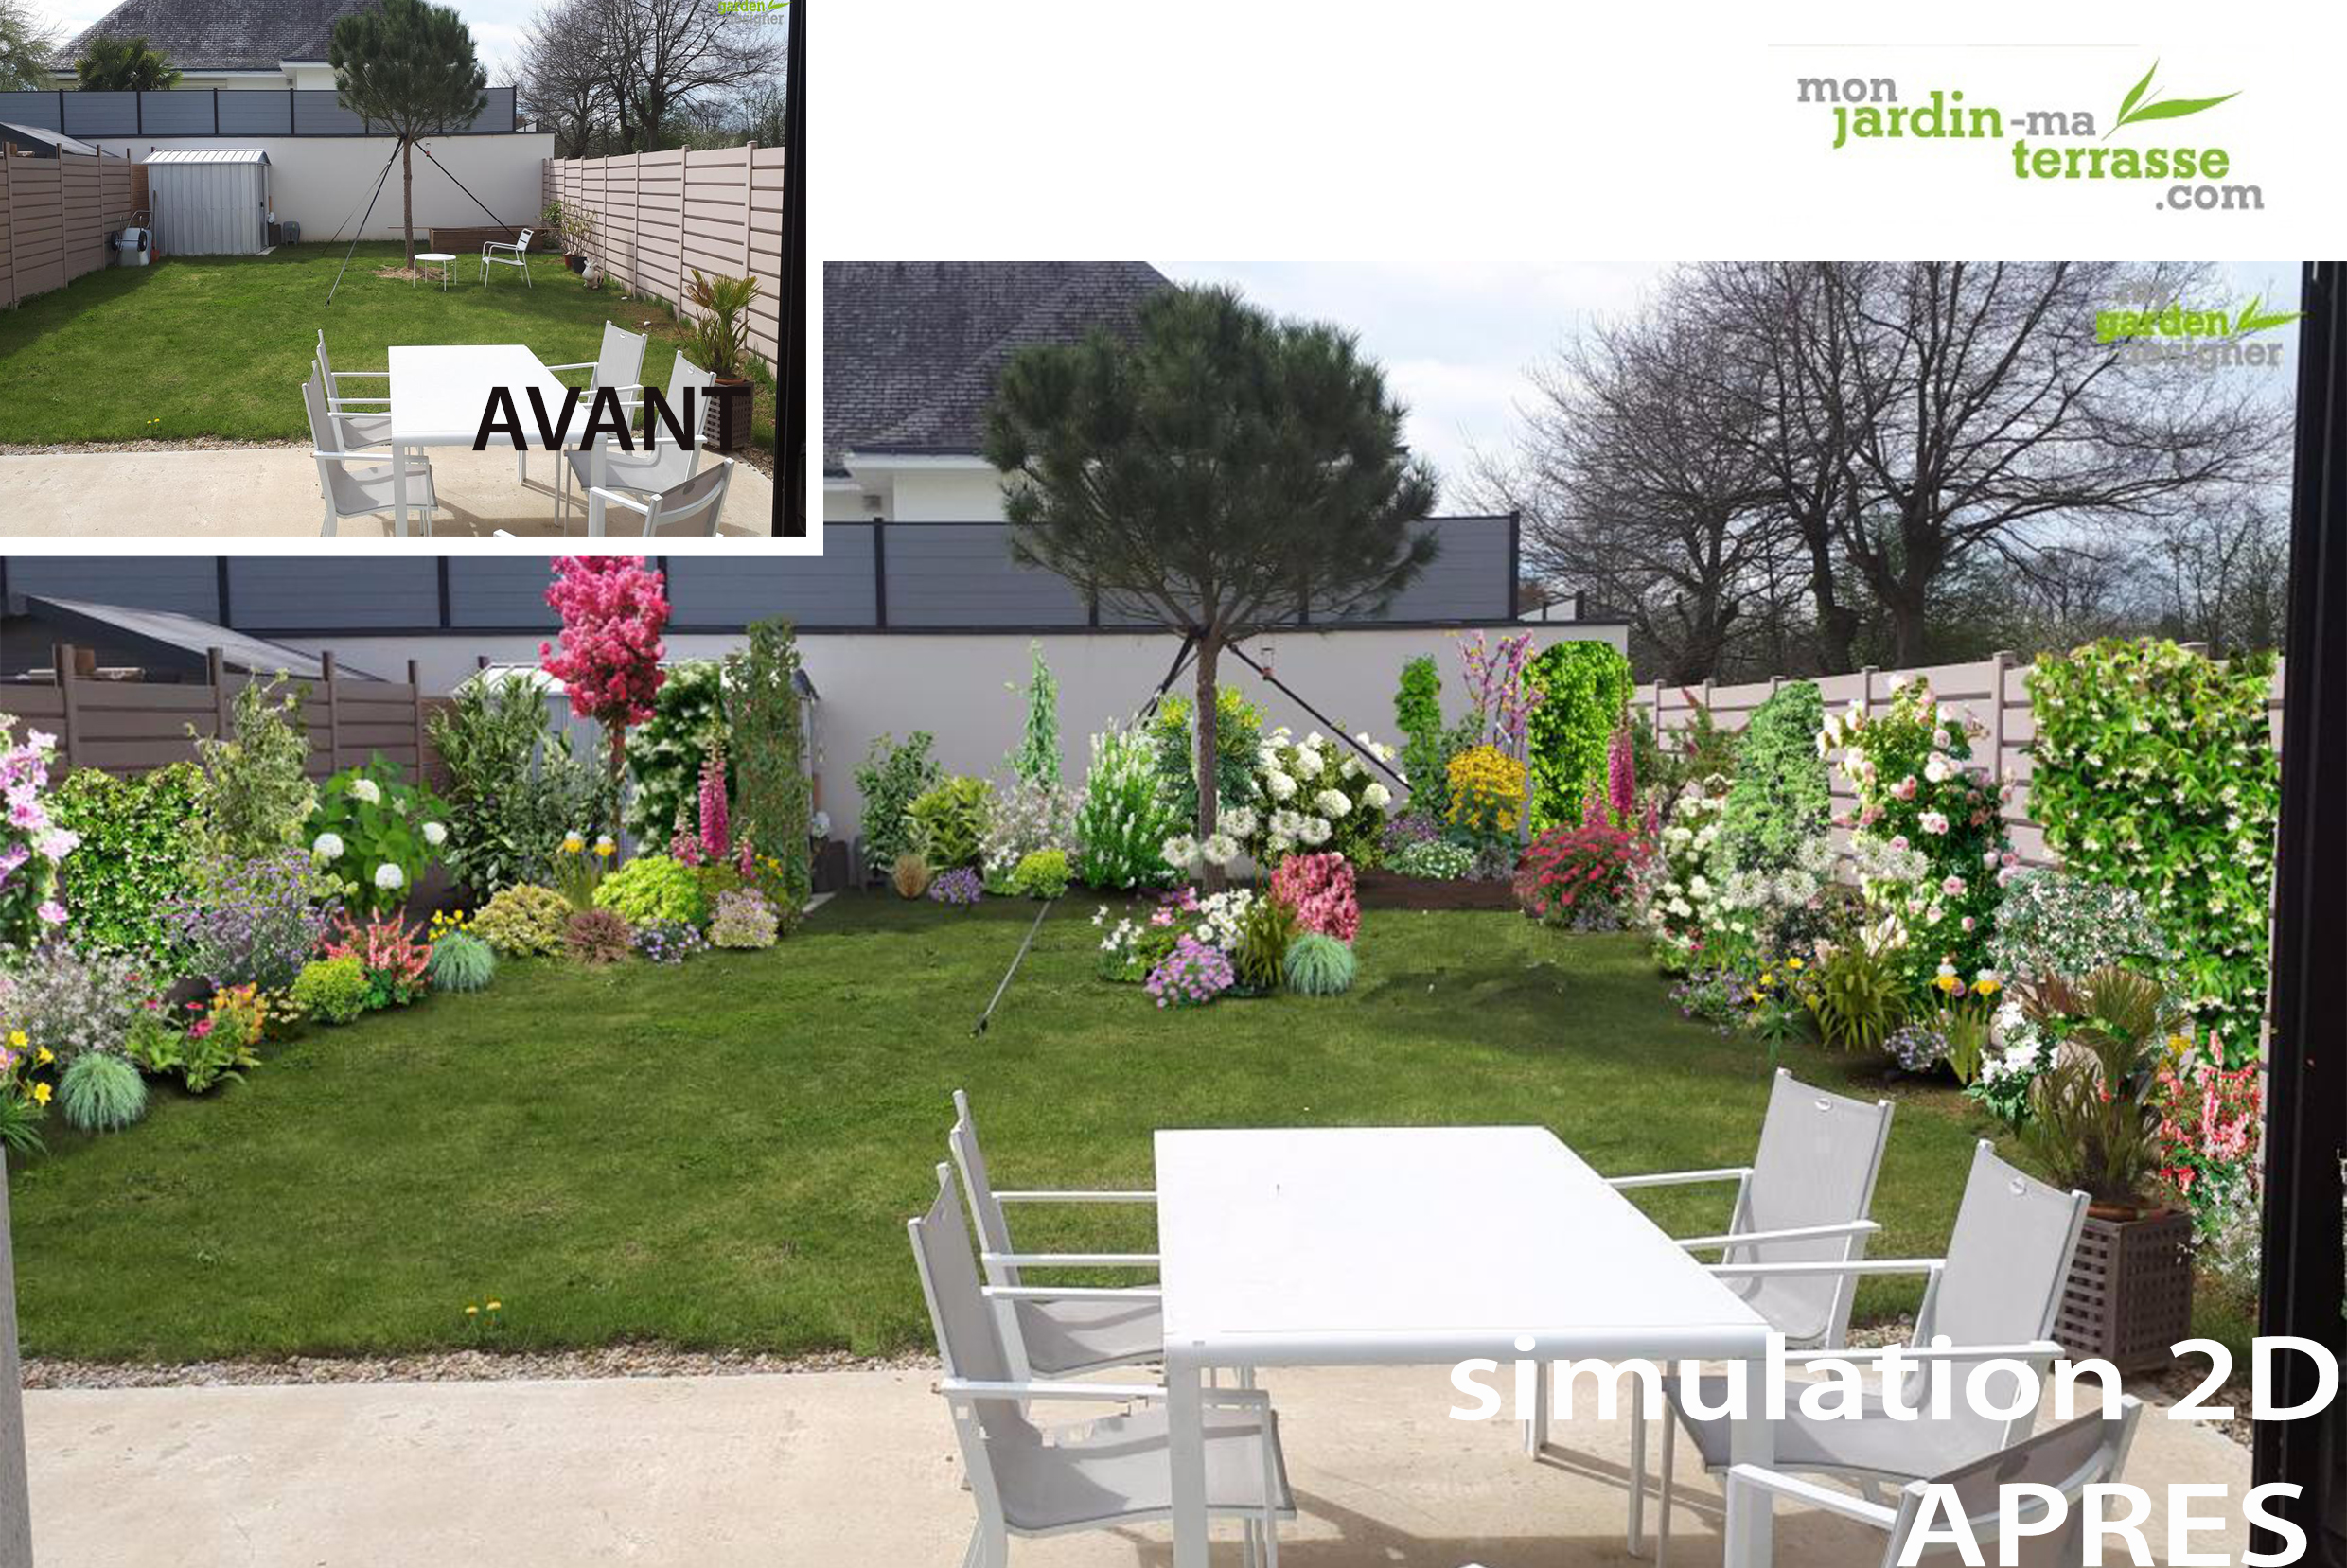 Comment am nager un petit jardin rectangulaire monjardin for Amenagement jardin vis a vis